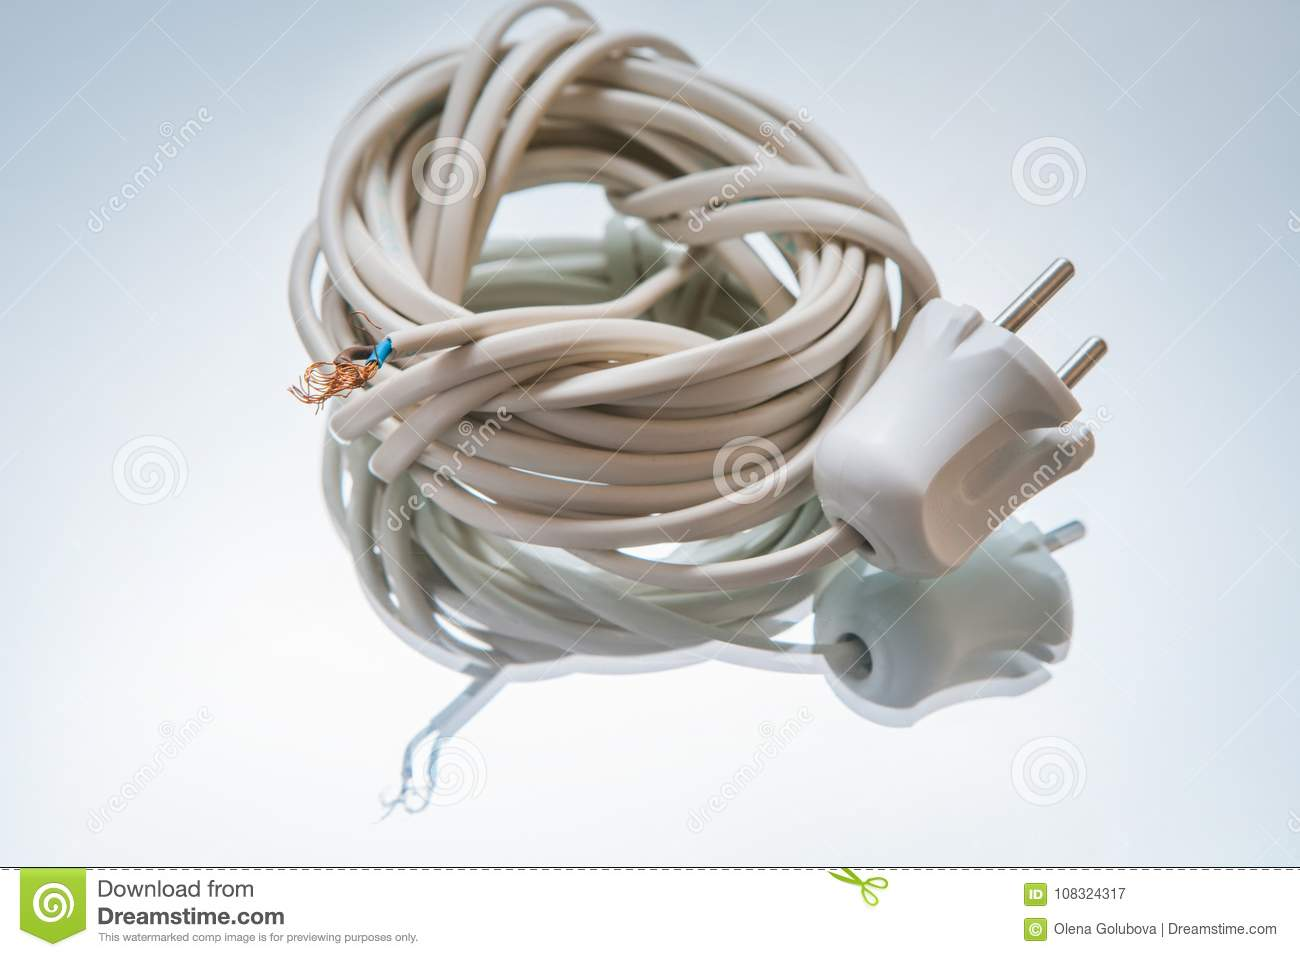 Electric cord with plug wire connect network